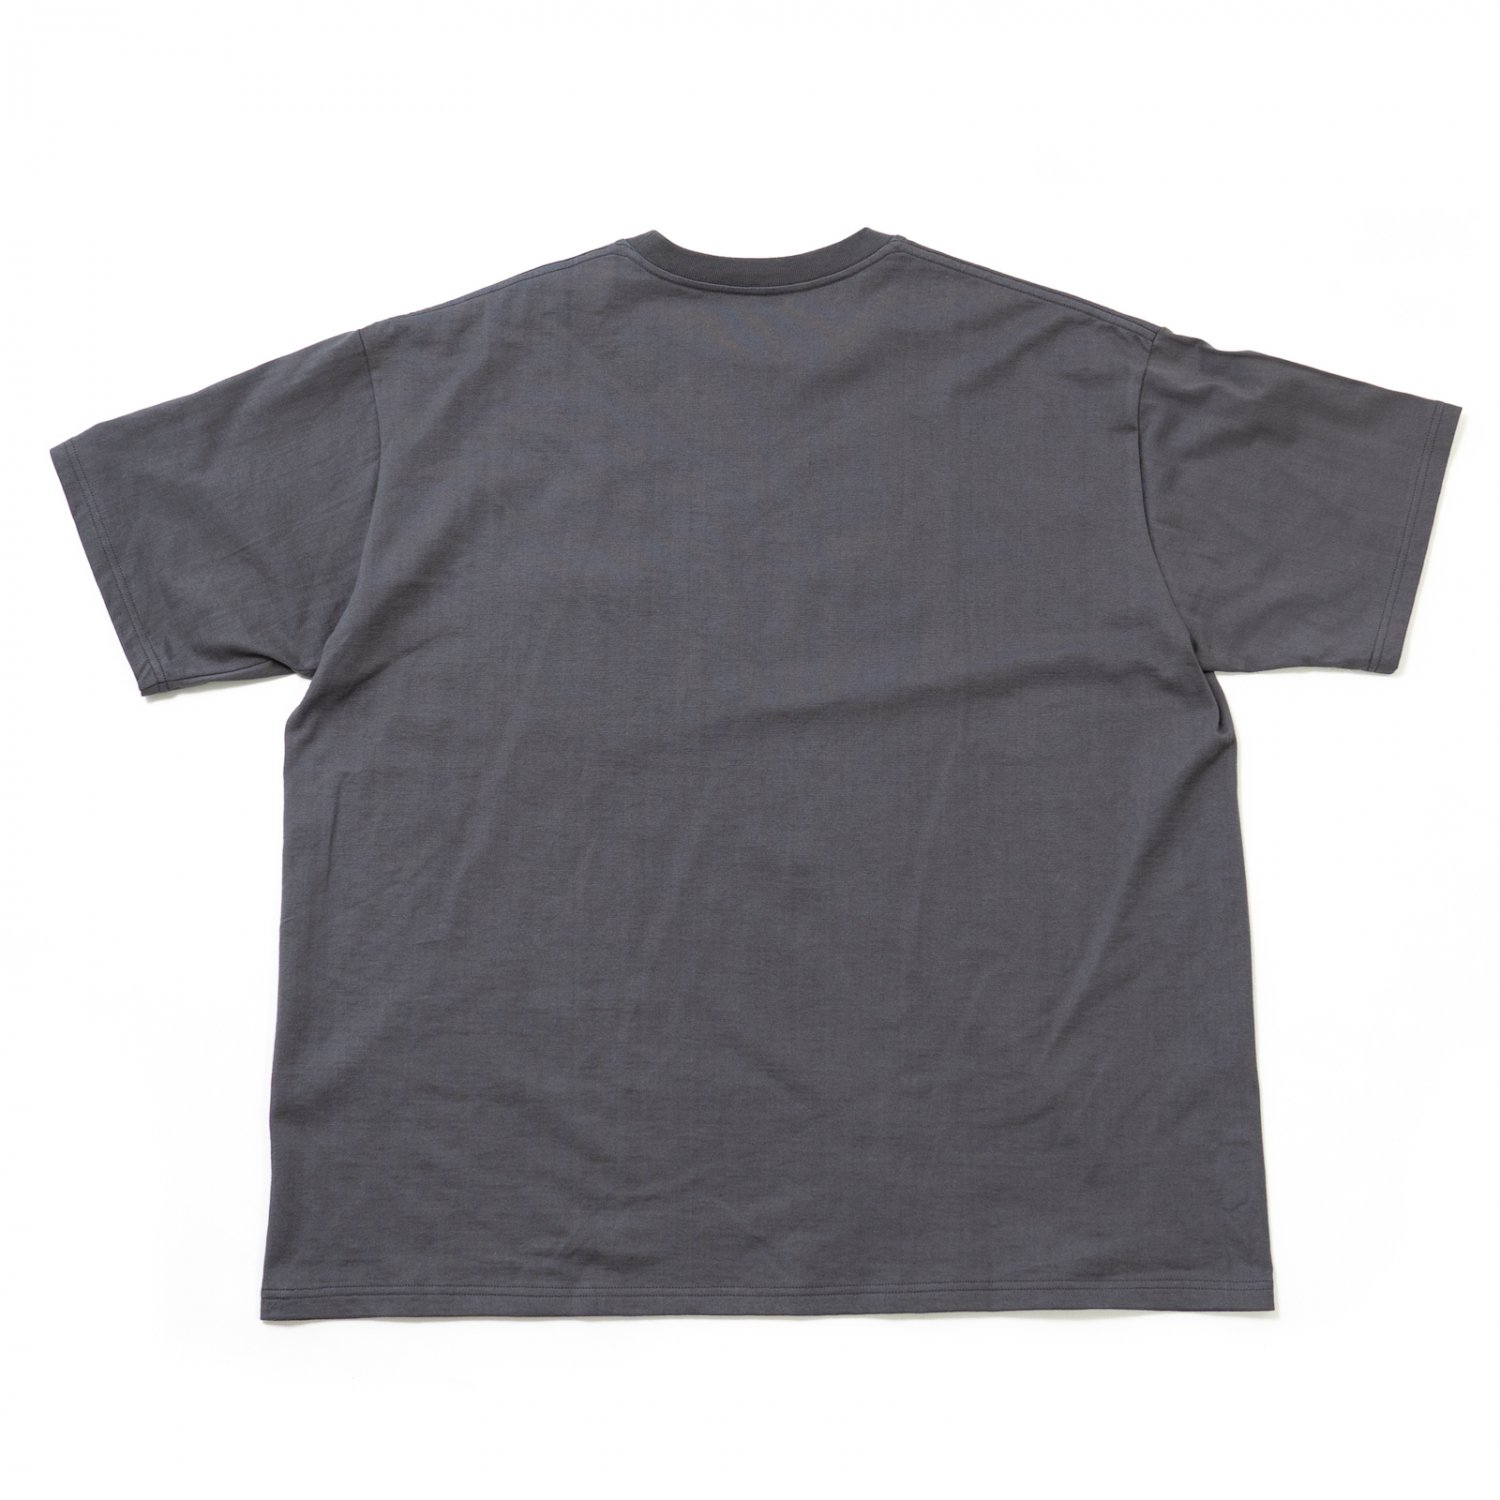 Graphpaper * S/S Oversized Pocket Tee * Gray